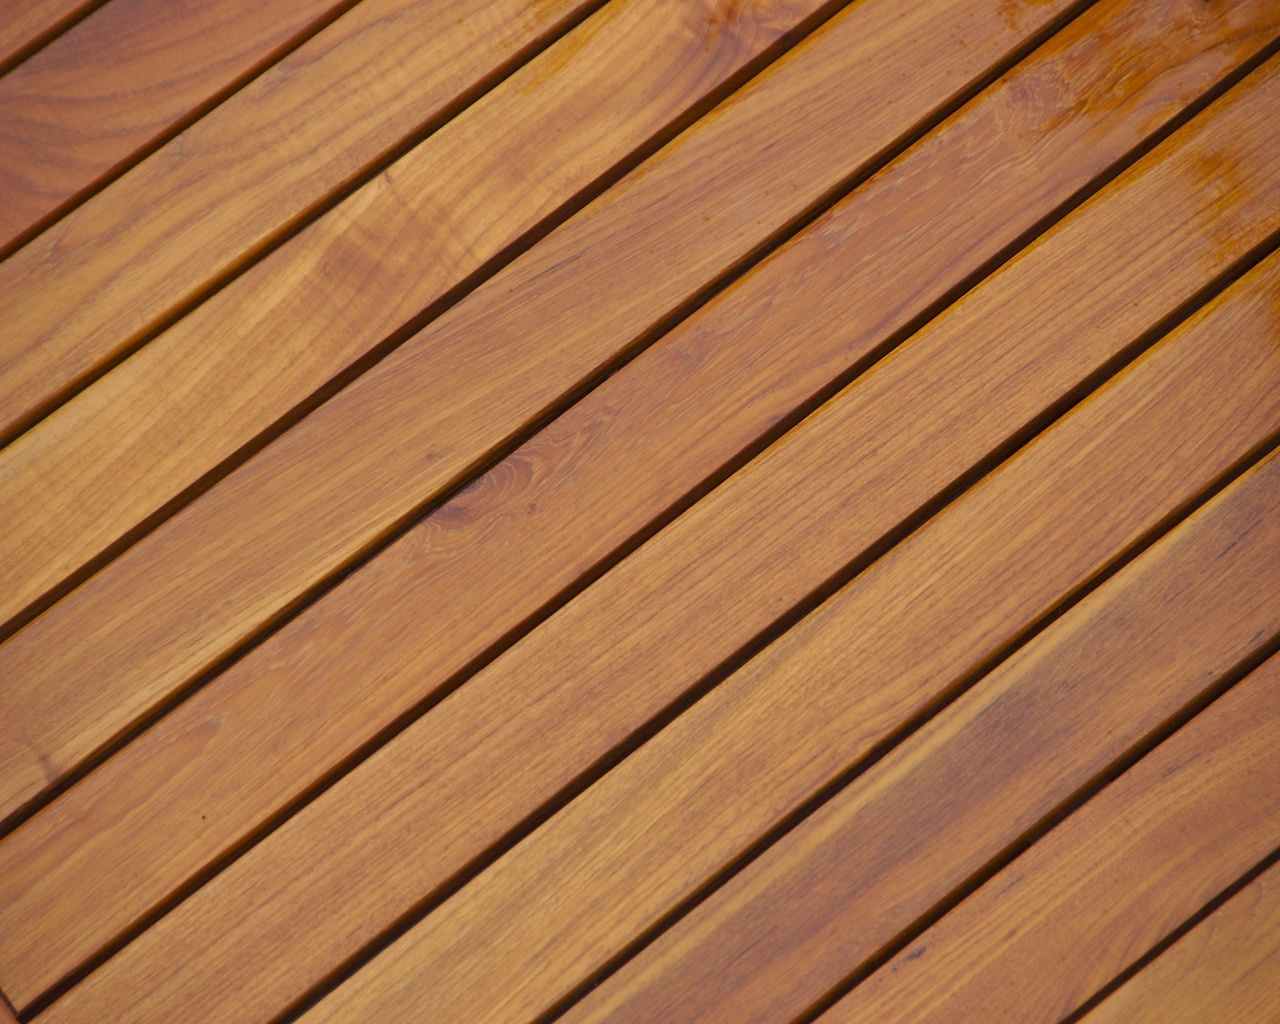 planking wood, texture, tree wood, download photo, wood texture